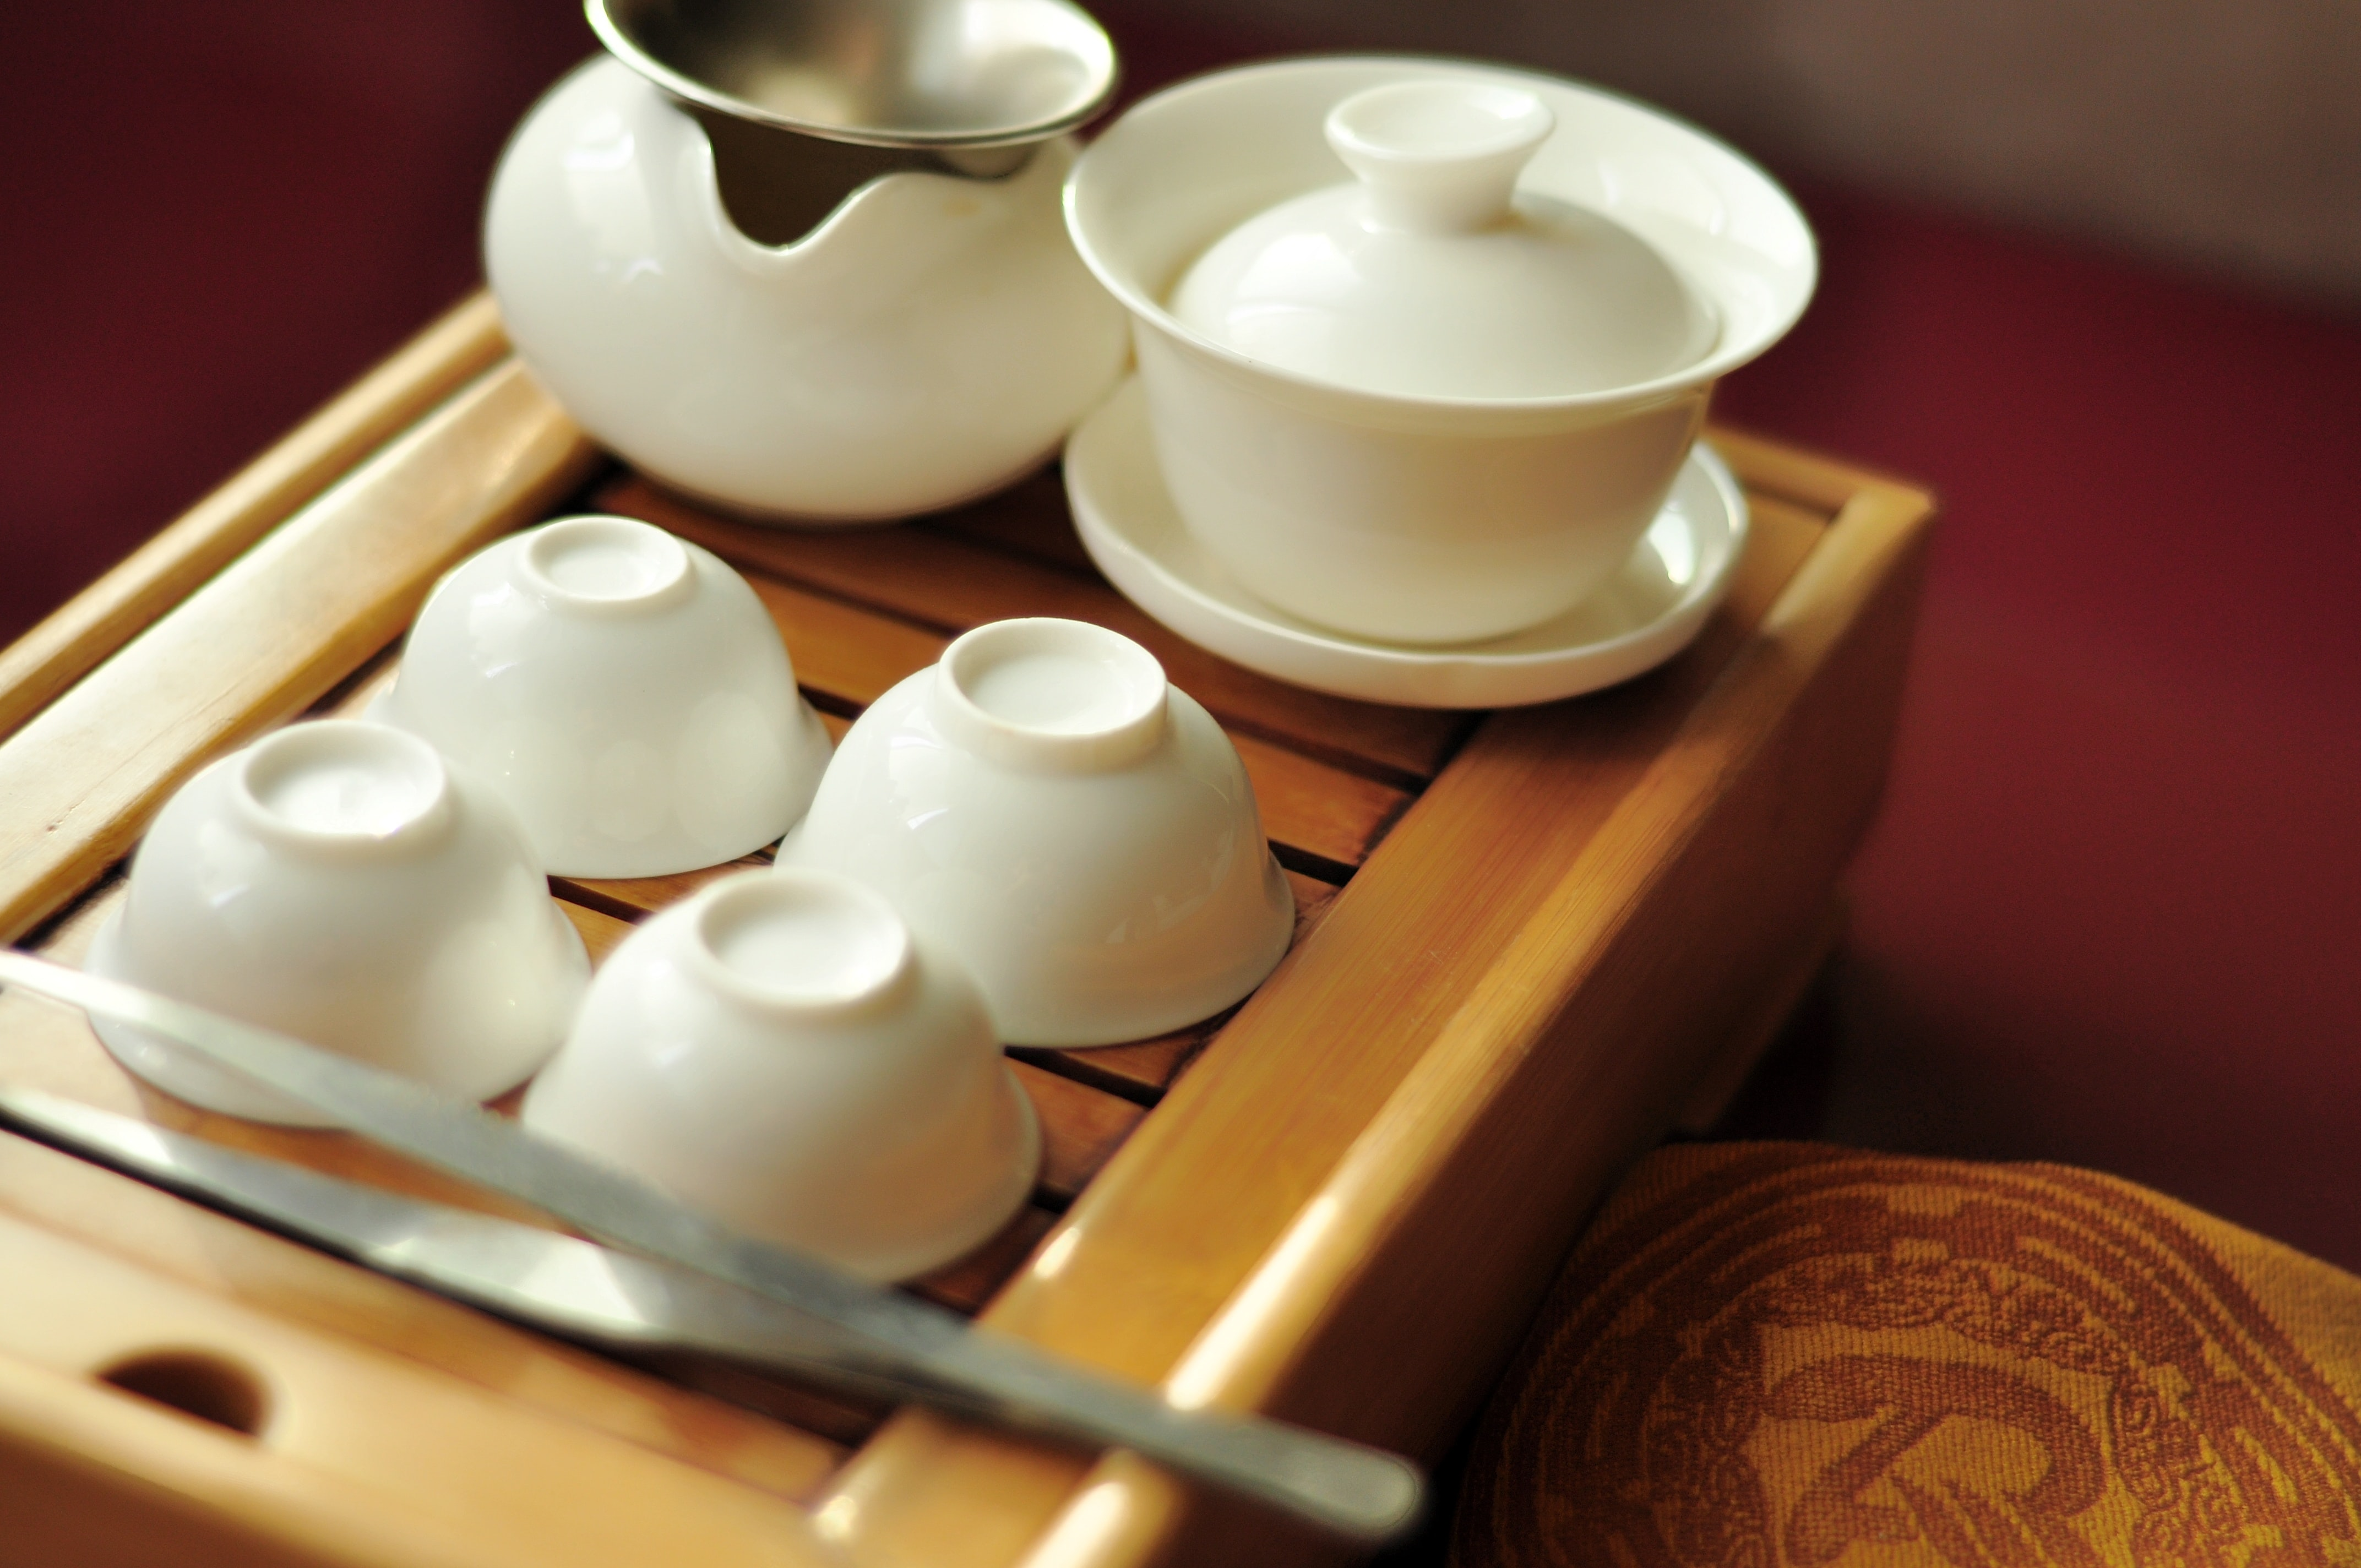 four white ceramic bowls near teapot and tureen on brown wooden tray